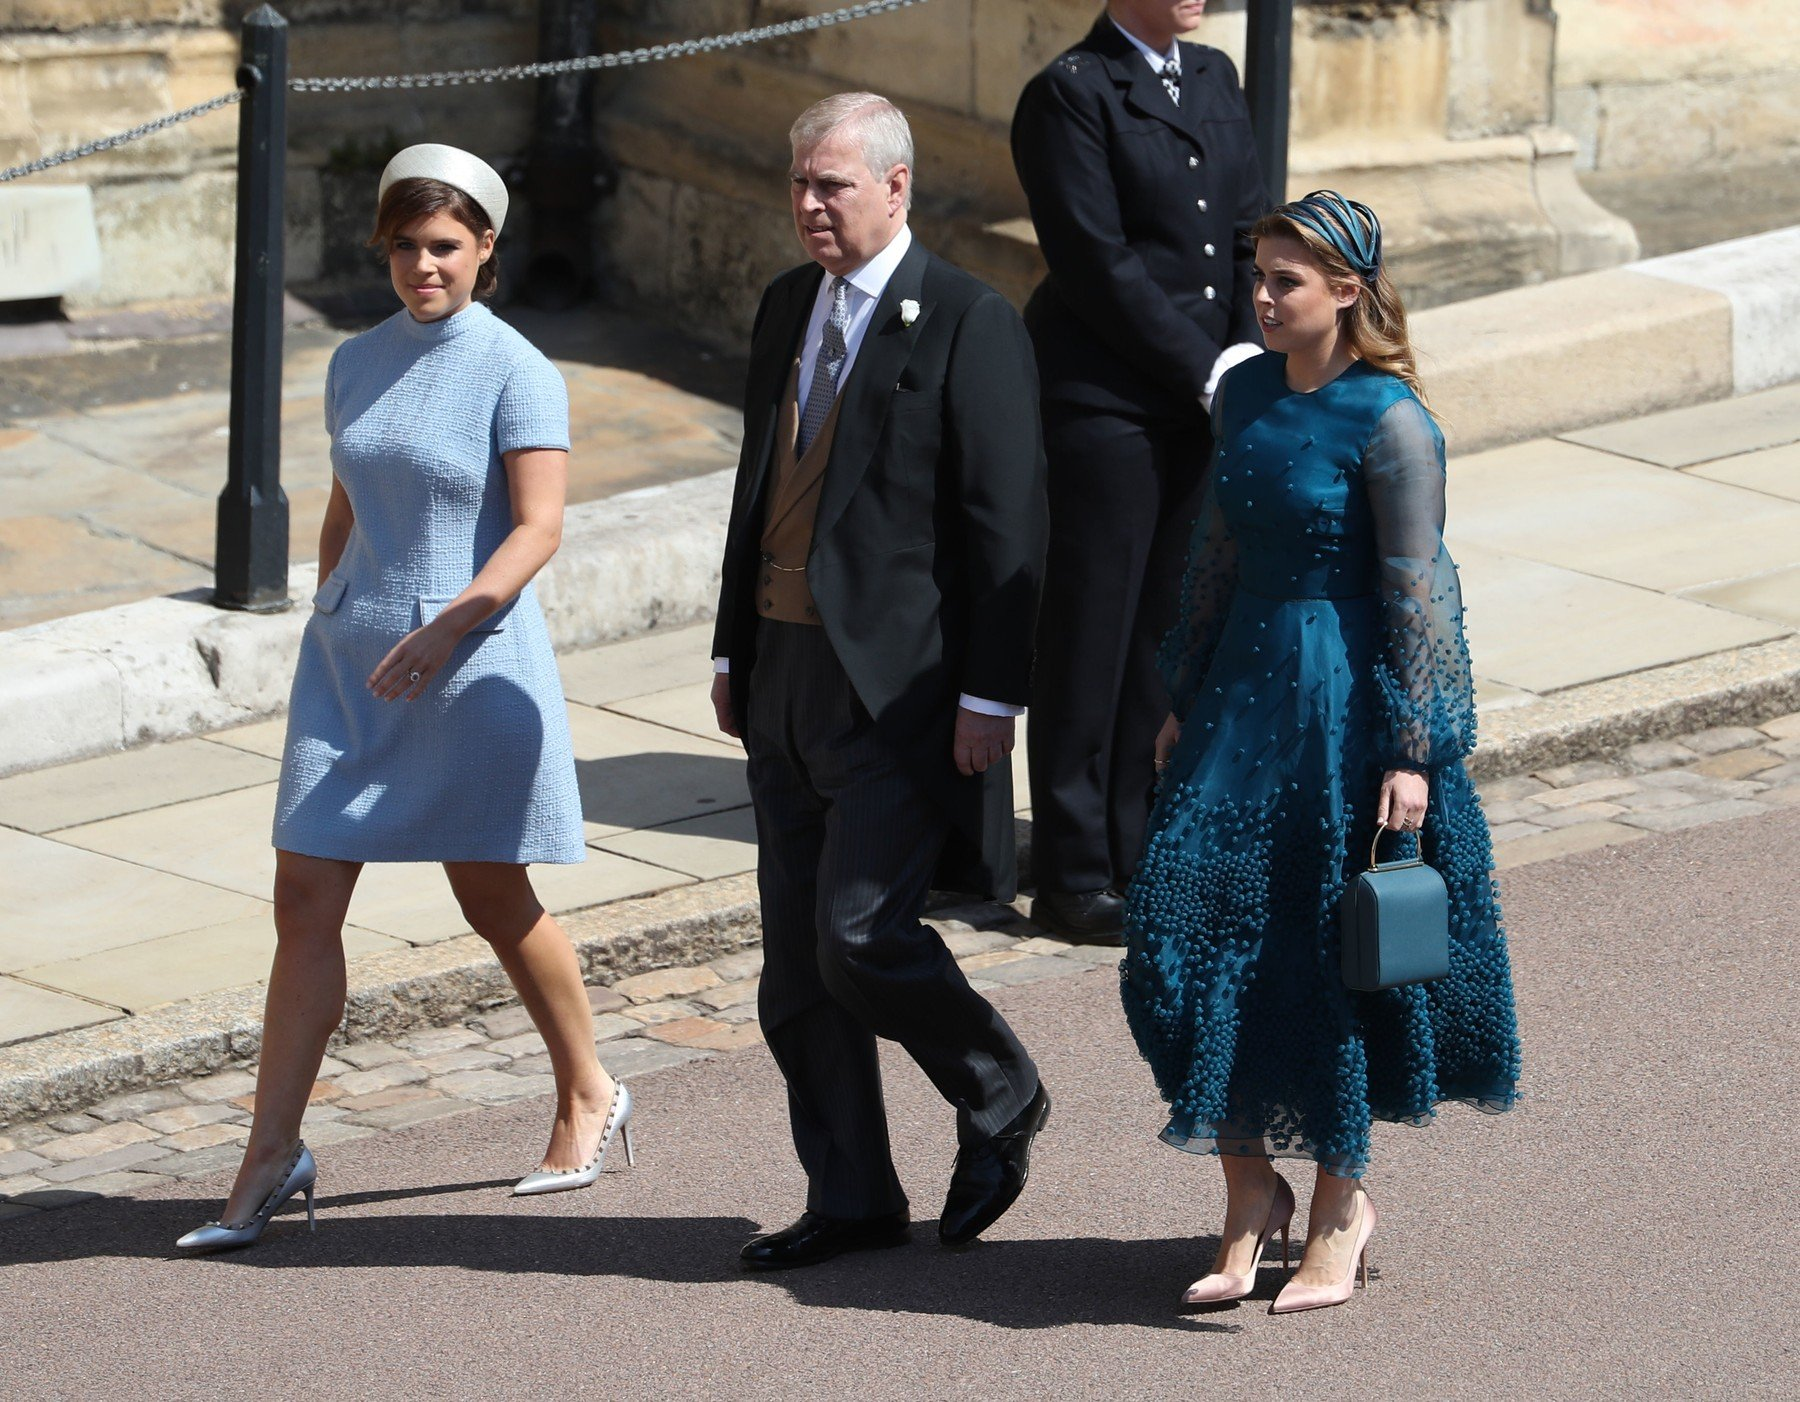 Princess Eugenie (left), the Duke of York and Princess Beatrice arrive at St George's Chapel in Windsor Castle for the wedding of Prince Harry and Meghan Markle., Image: 372255035, License: Rights-managed, Restrictions: , Model Release: no, Credit line: Profimedia, Press Association